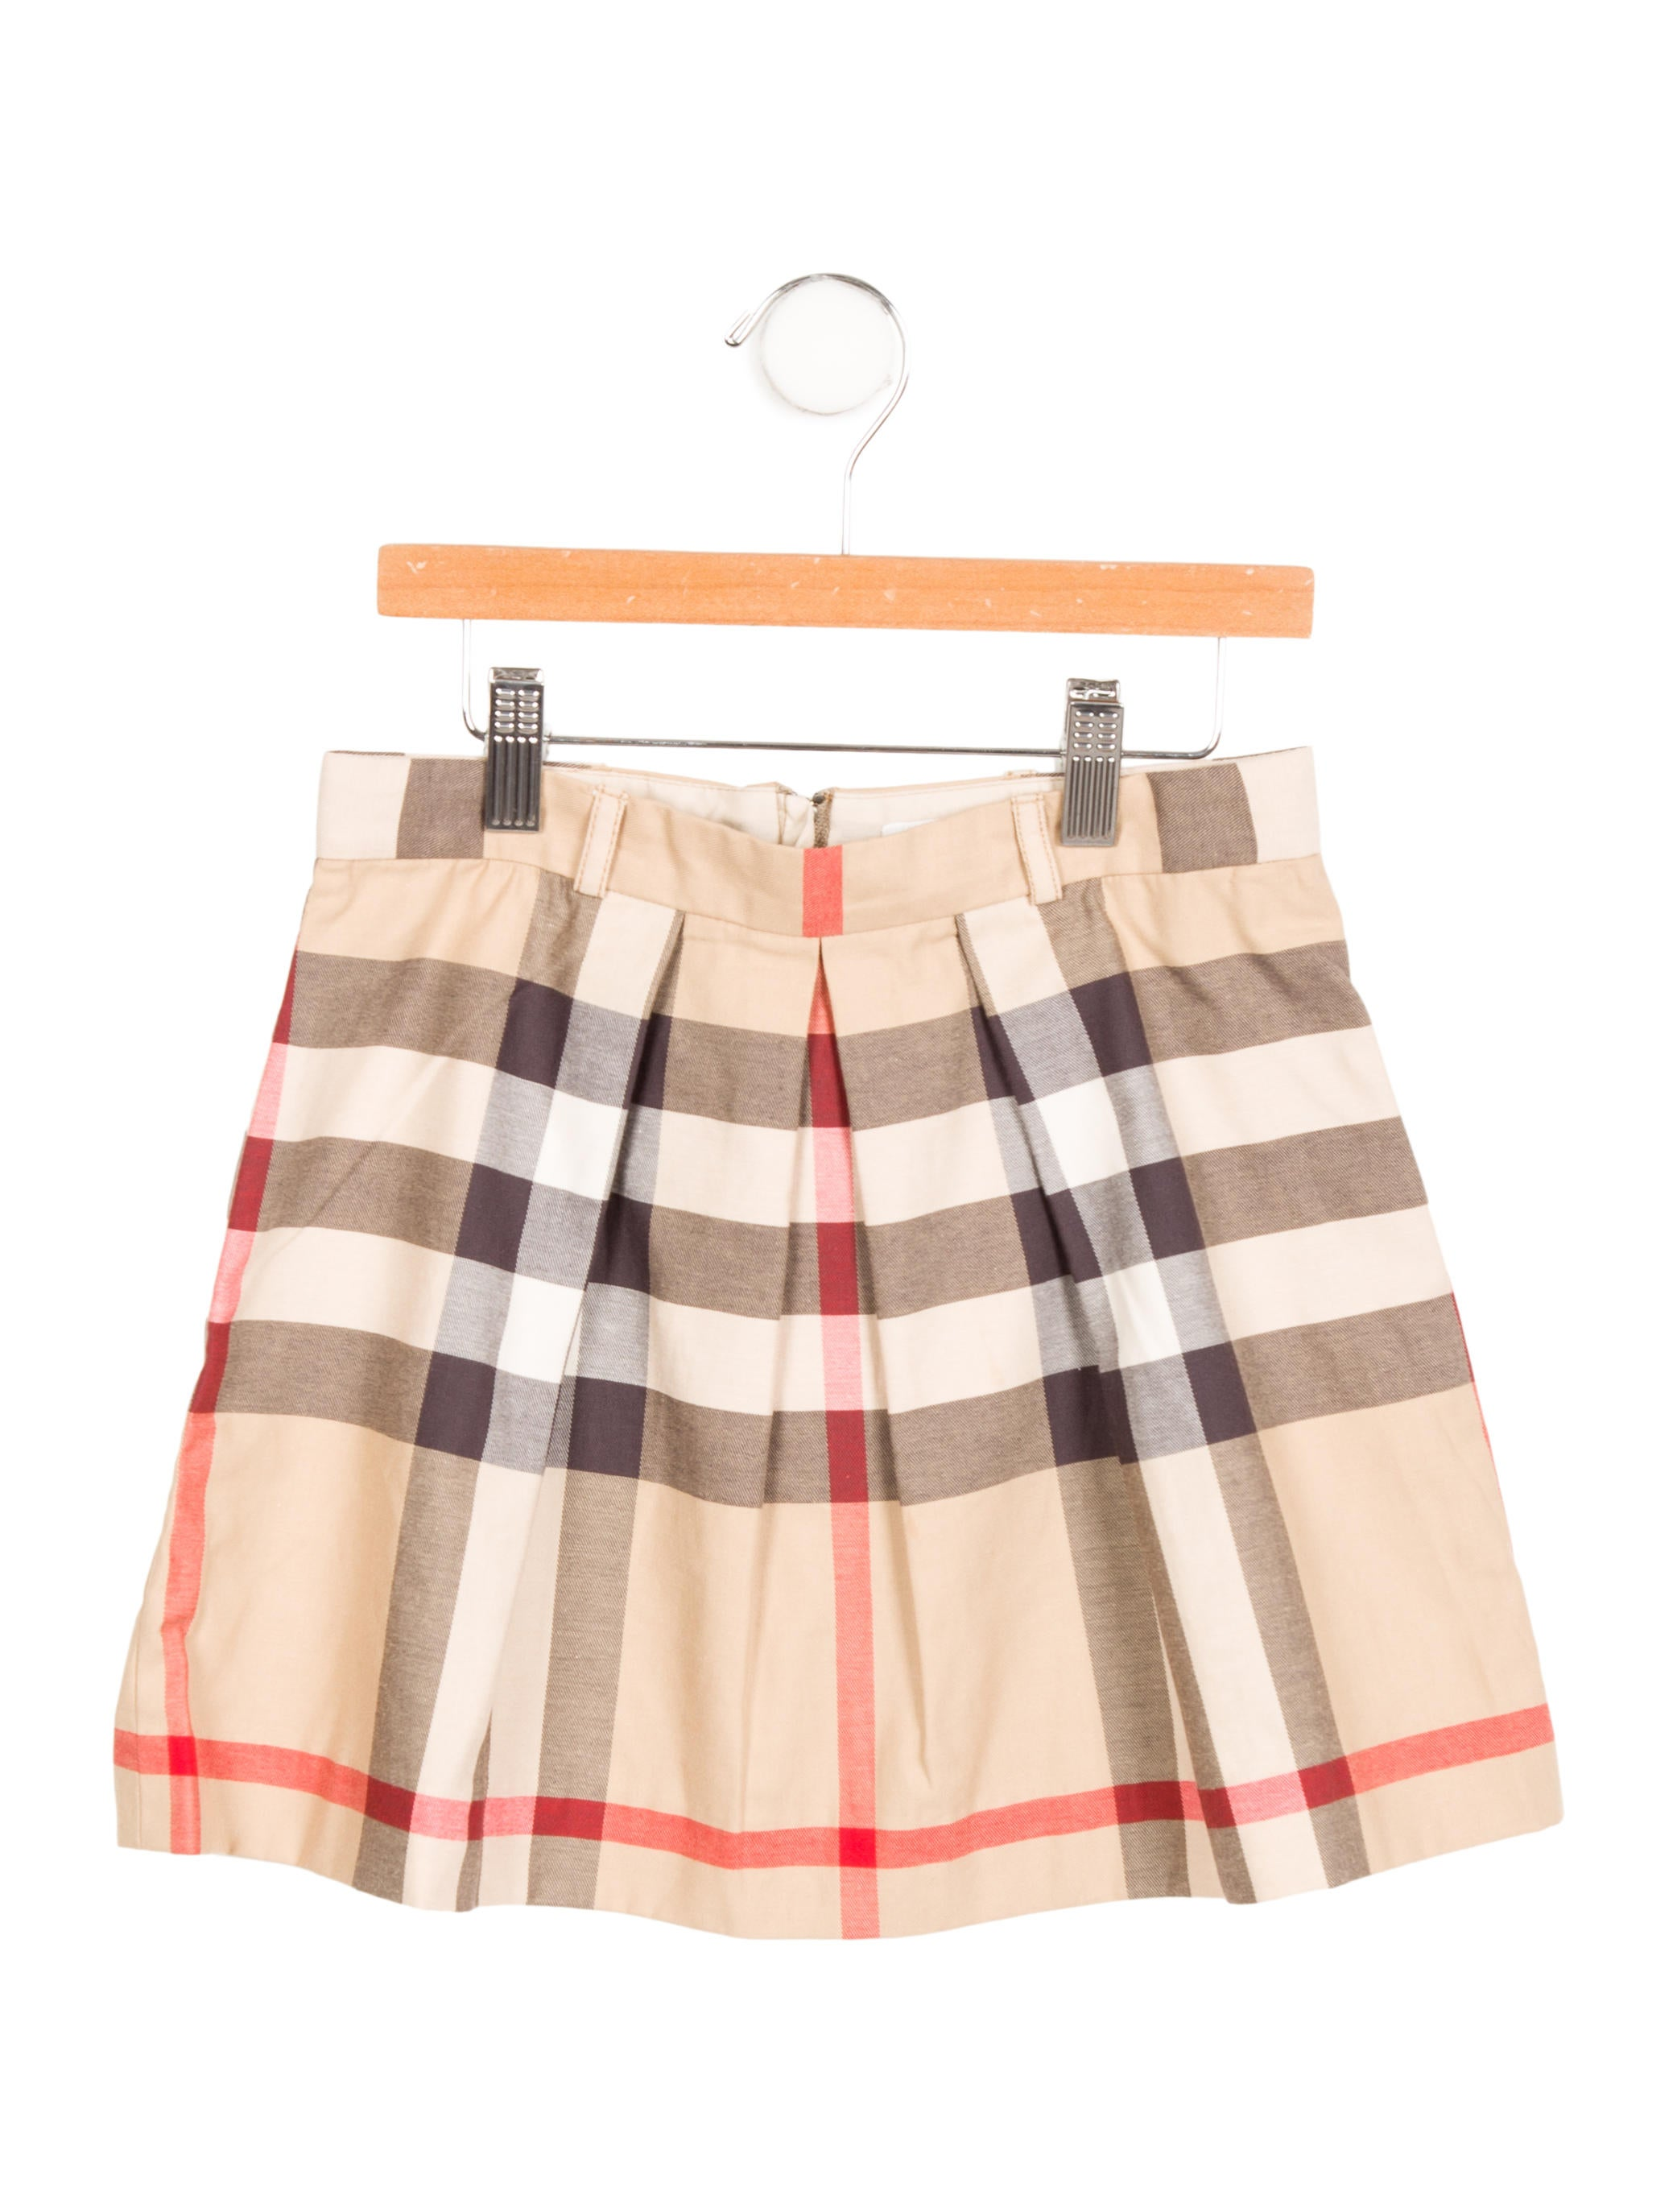 burberry check pleated skirt w tags